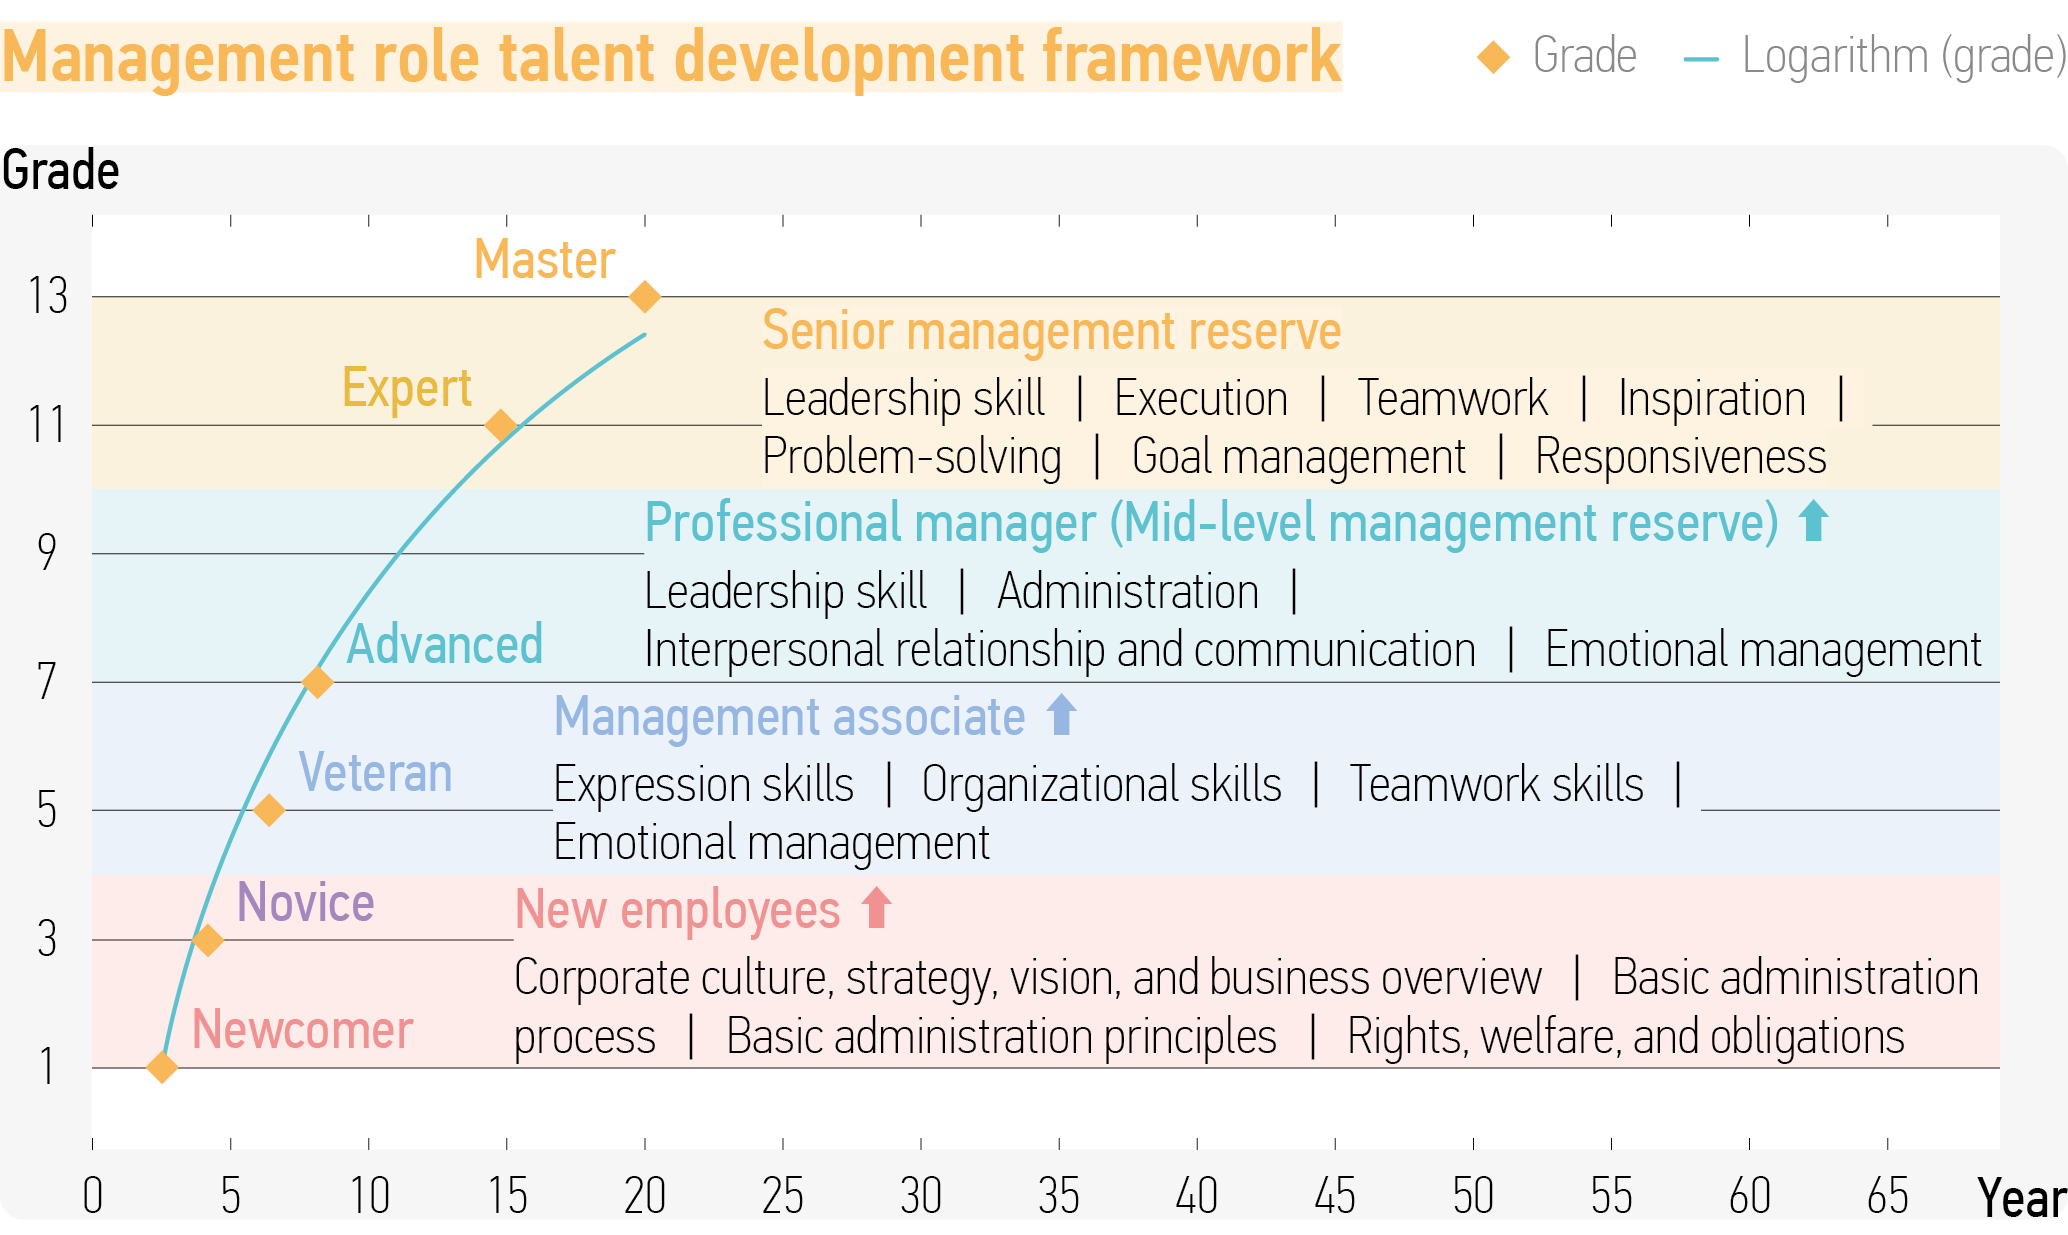 Management talent development framework